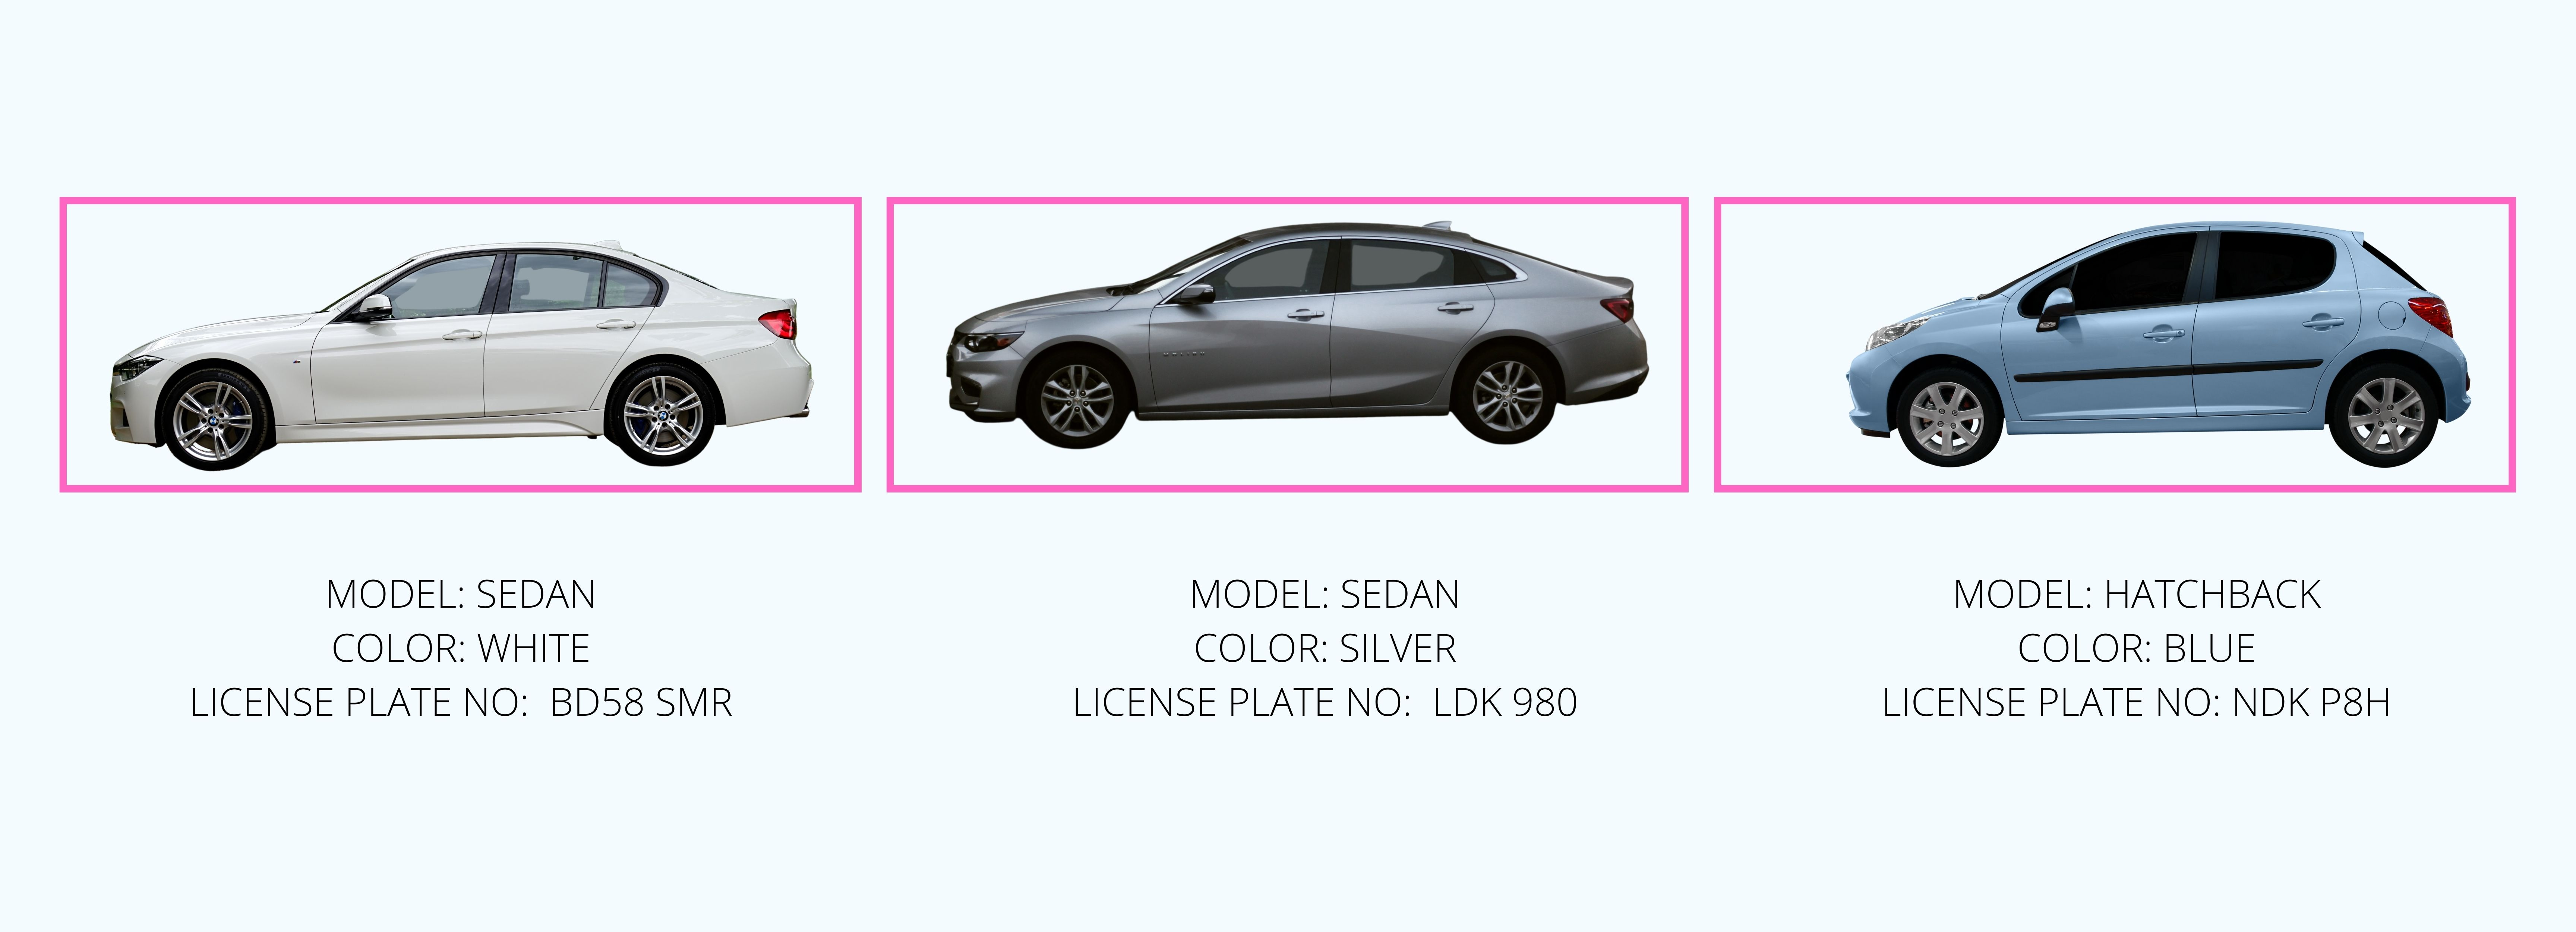 object identification of multiple cars